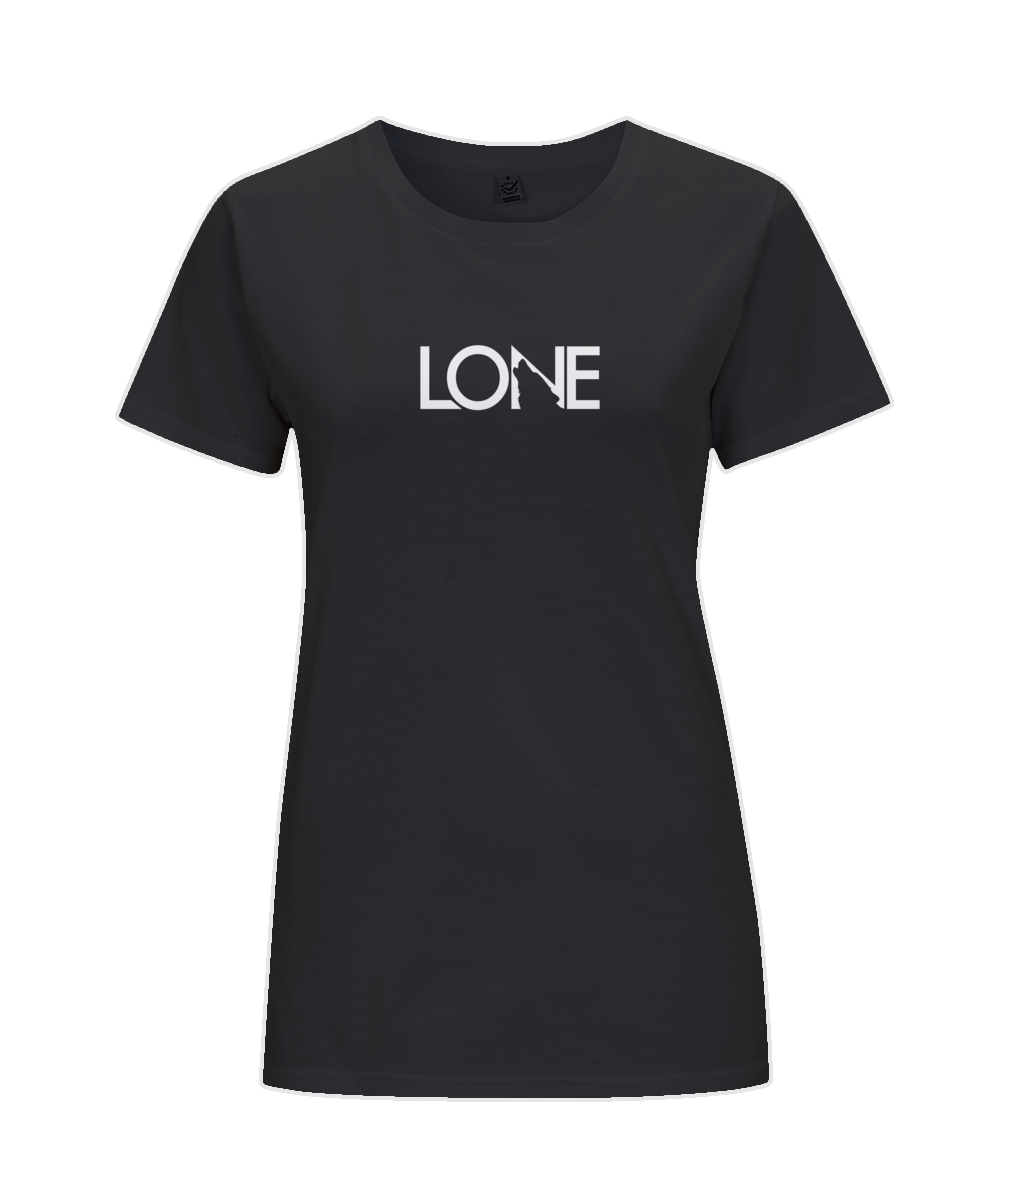 Lone Howl Women's T-Shirt